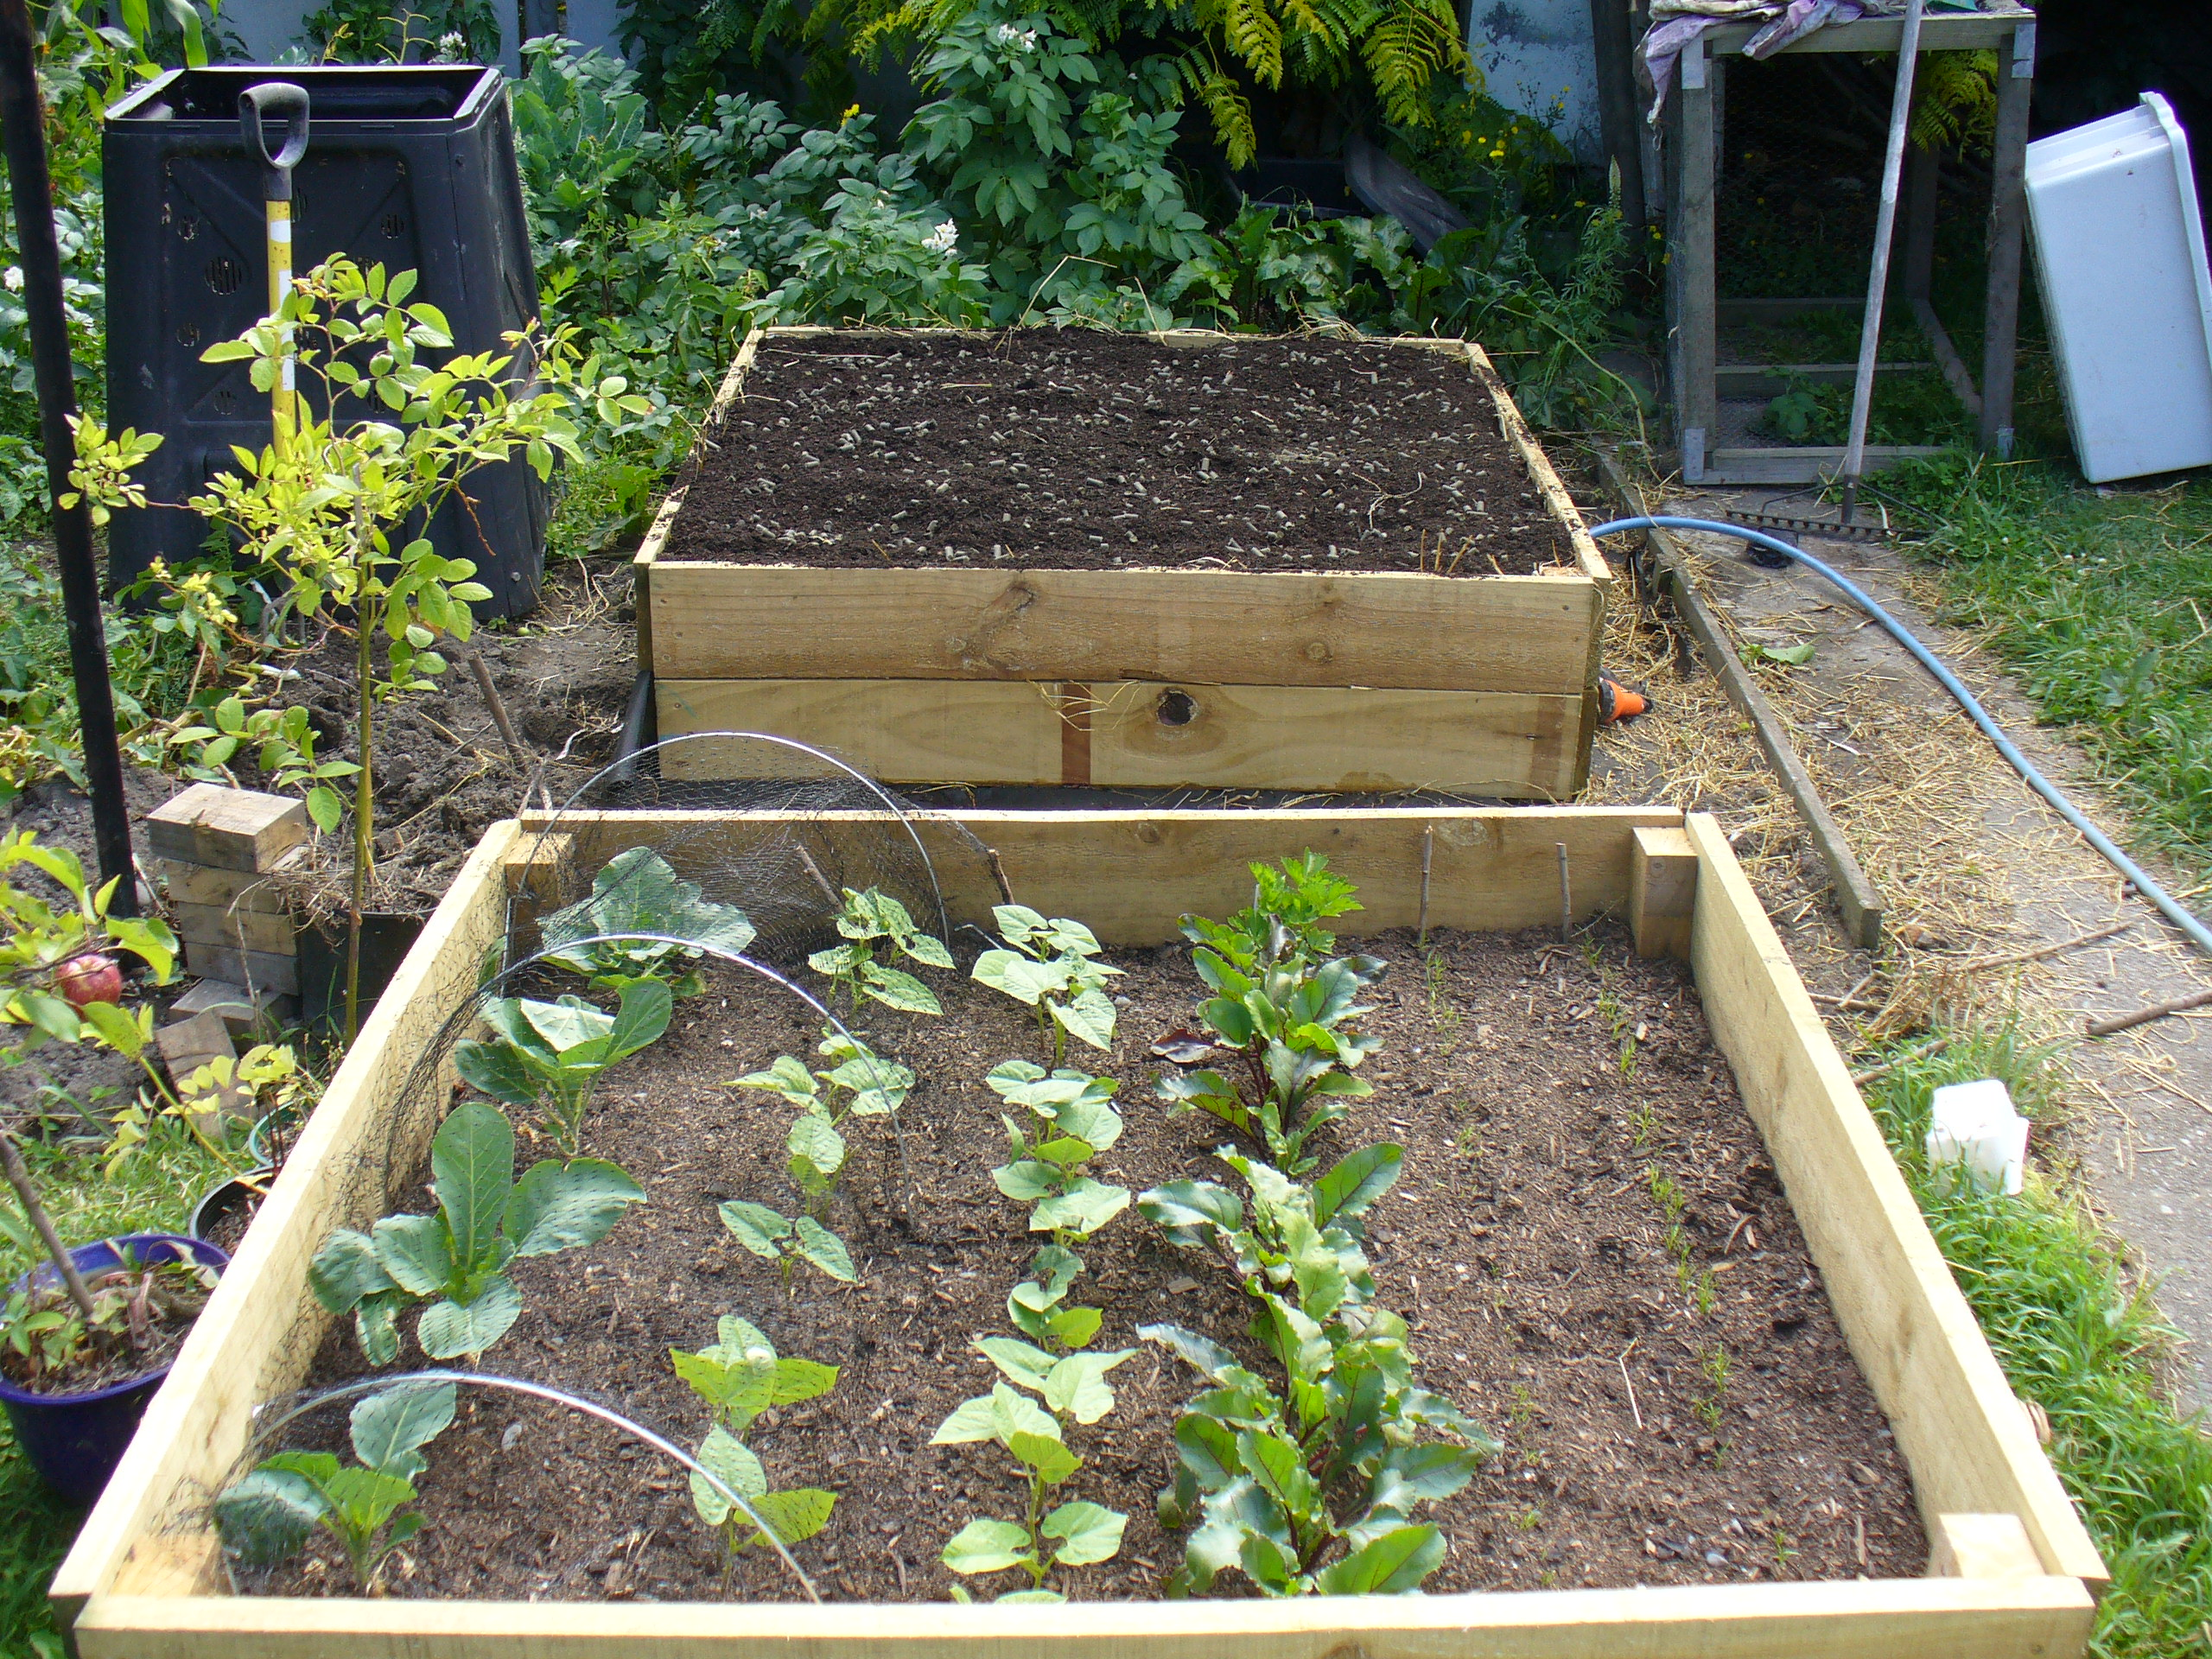 How to build a Raised Vegetable Garden Gentle by Nature